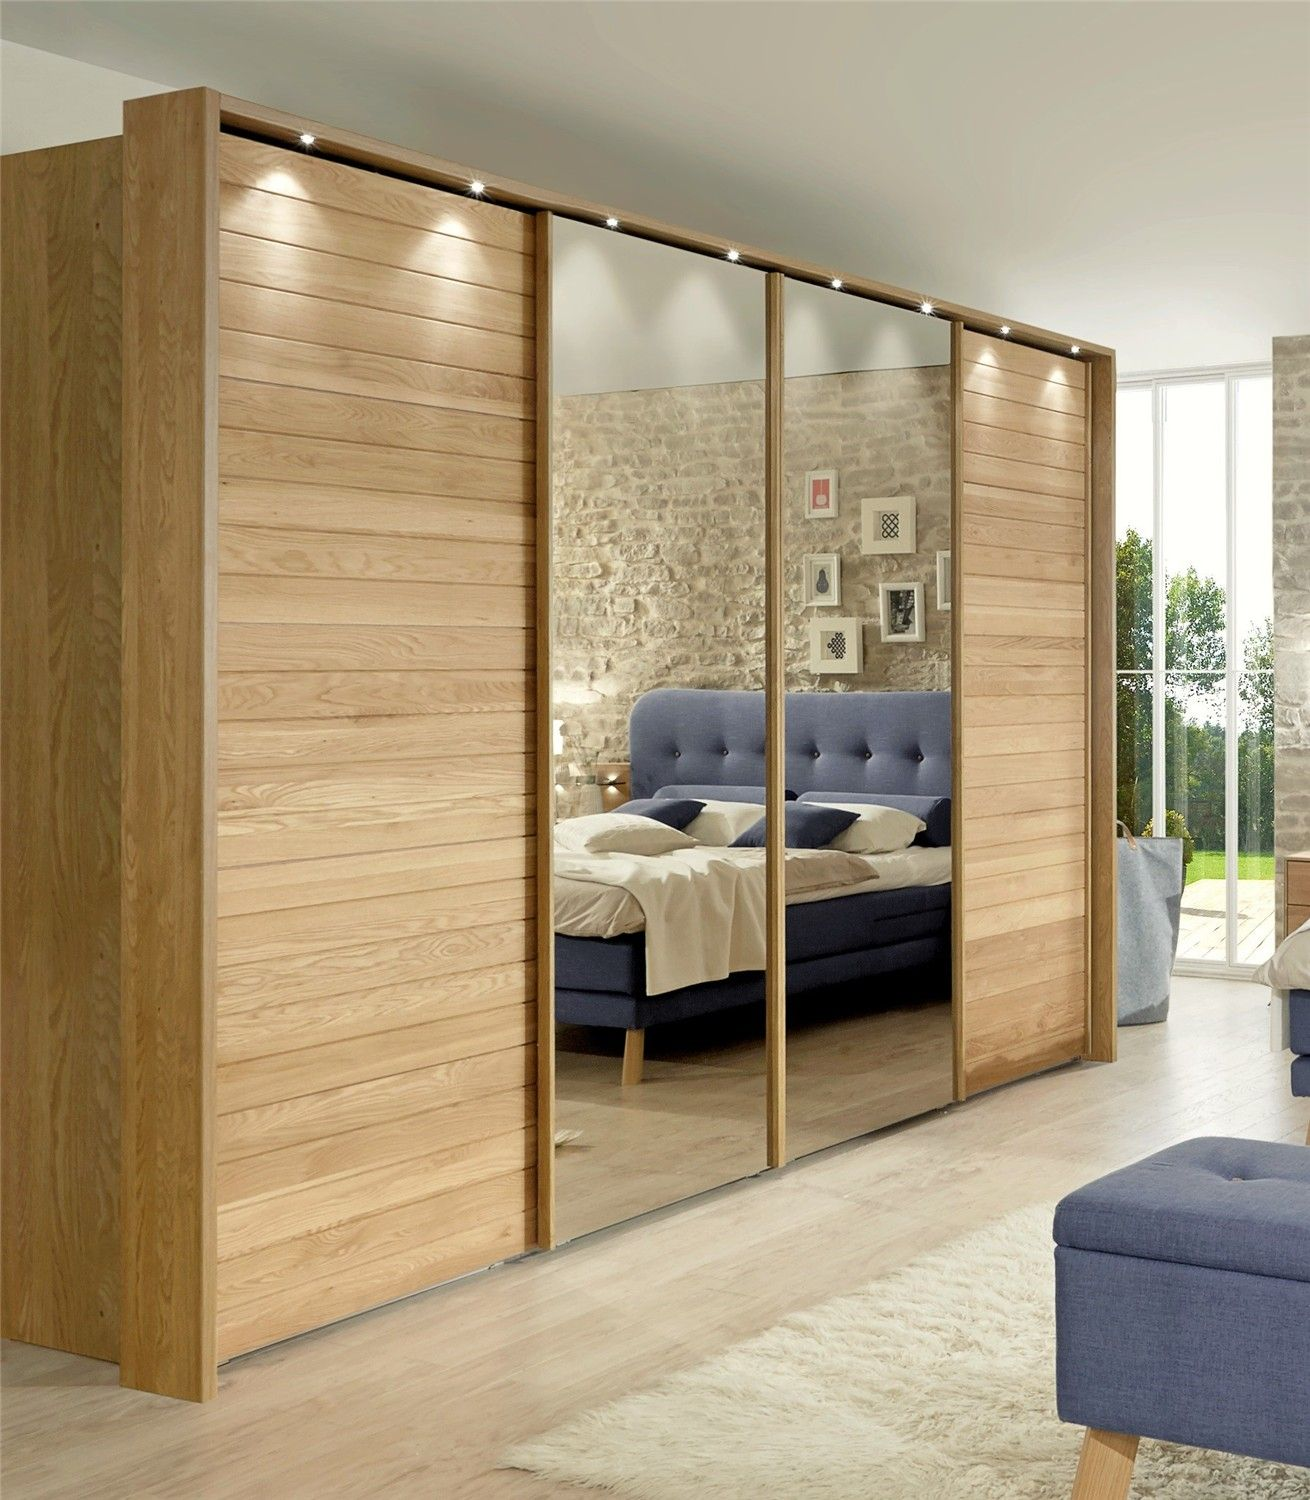 Beautiful Sliding Mirror Closet Doors For Bedrooms Goodworksfurniture In 2020 Sliding Door Wardrobe Designs Wardrobe Door Designs Wardrobe Design Modern